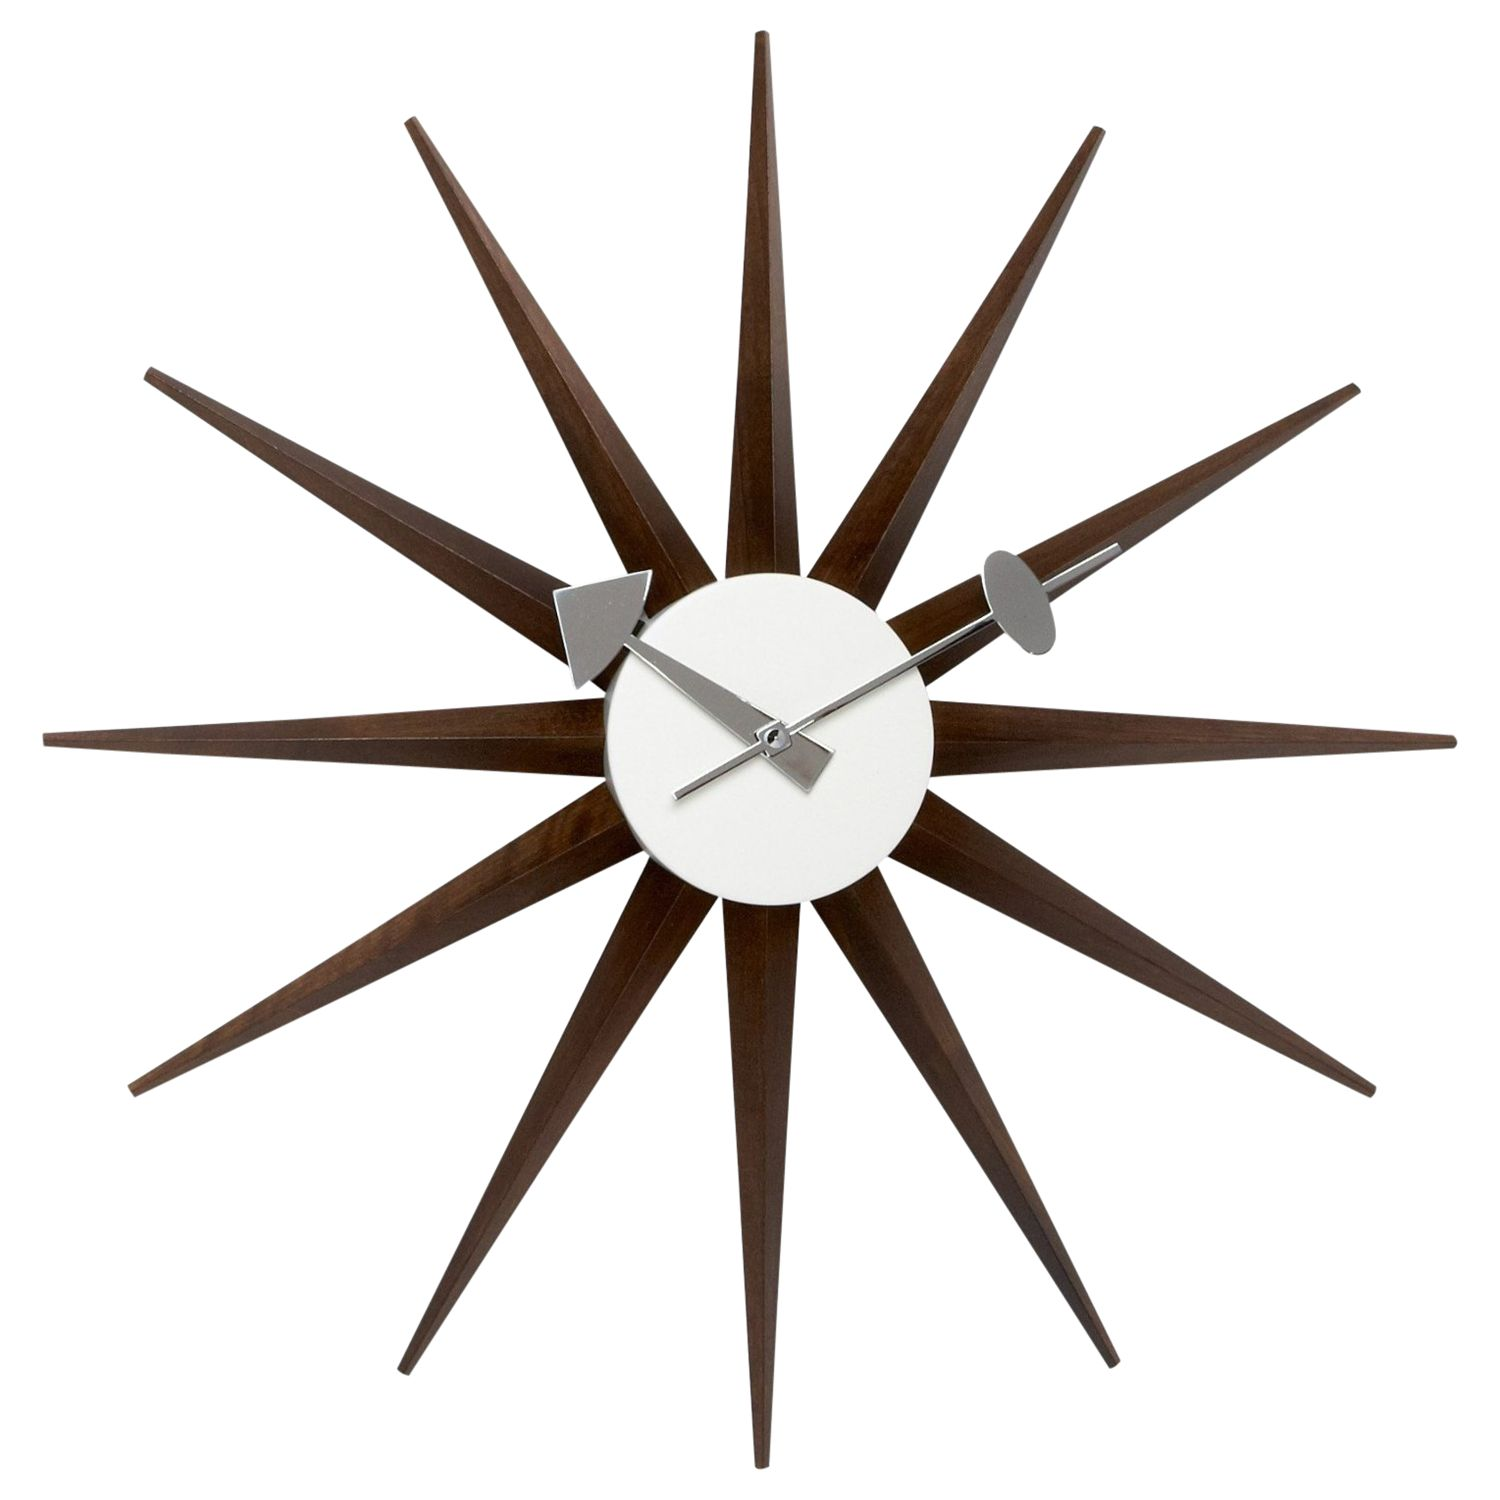 Vitra Clock Vitra Sunburst Wall Clock, Dia.47cm At John Lewis & Partners